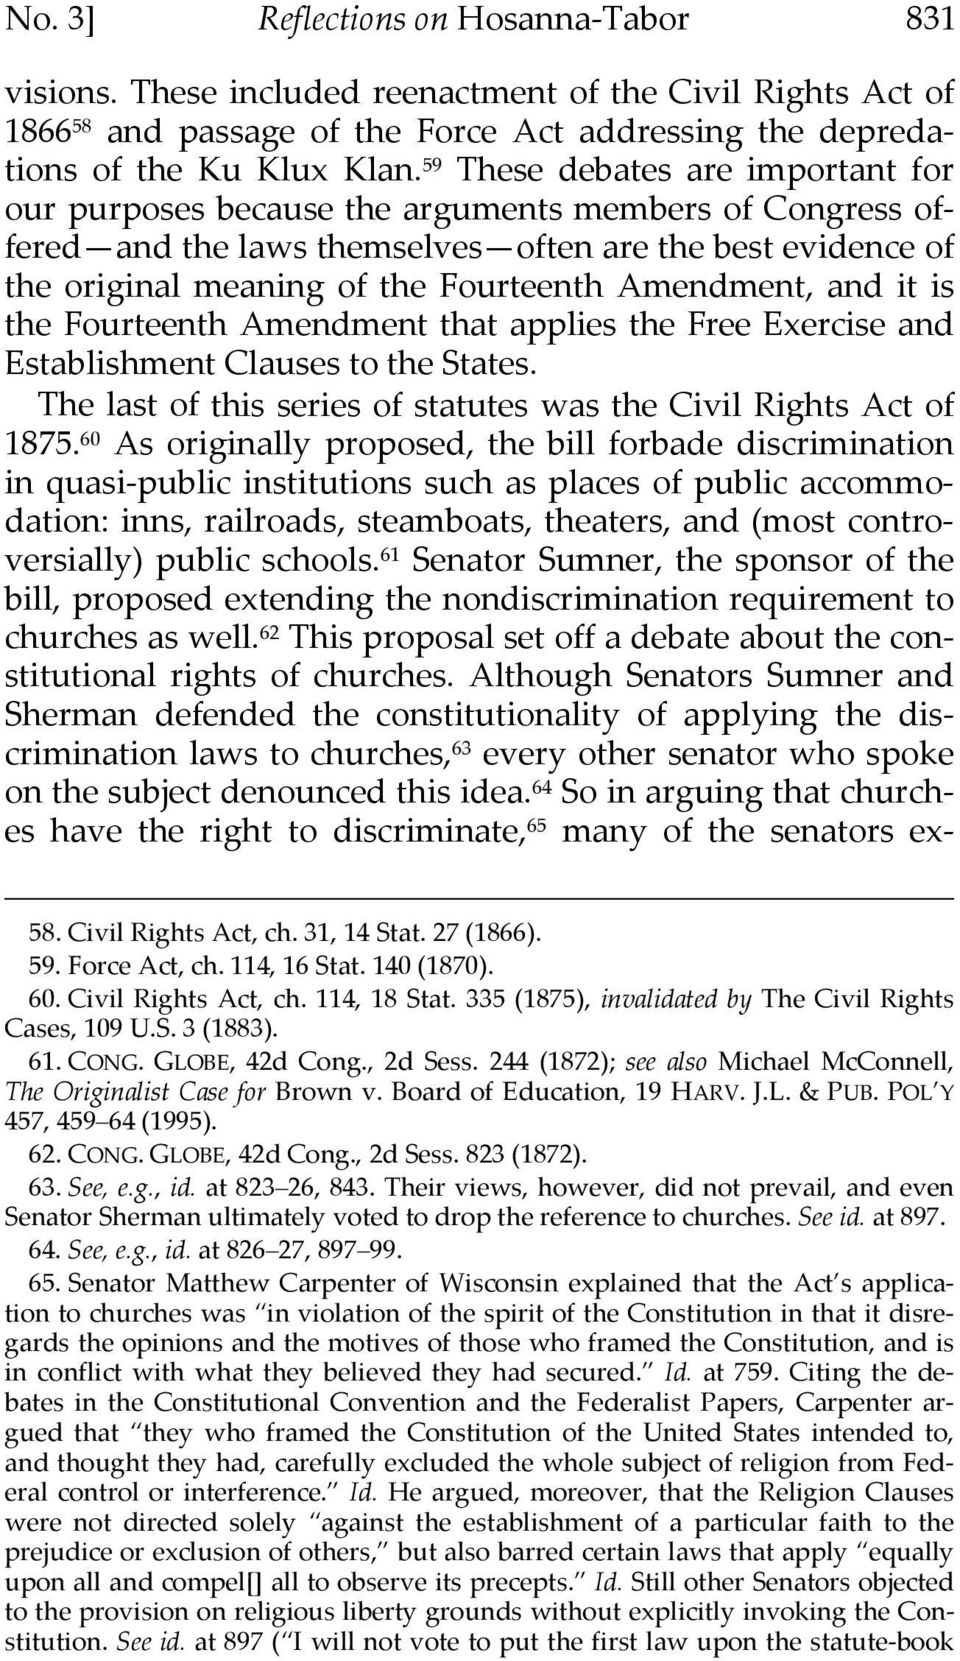 Amendment, and it is the Fourteenth Amendment that applies the Free Exercise and Establishment Clauses to the States. The last of this series of statutes was the Civil Rights Act of 1875.